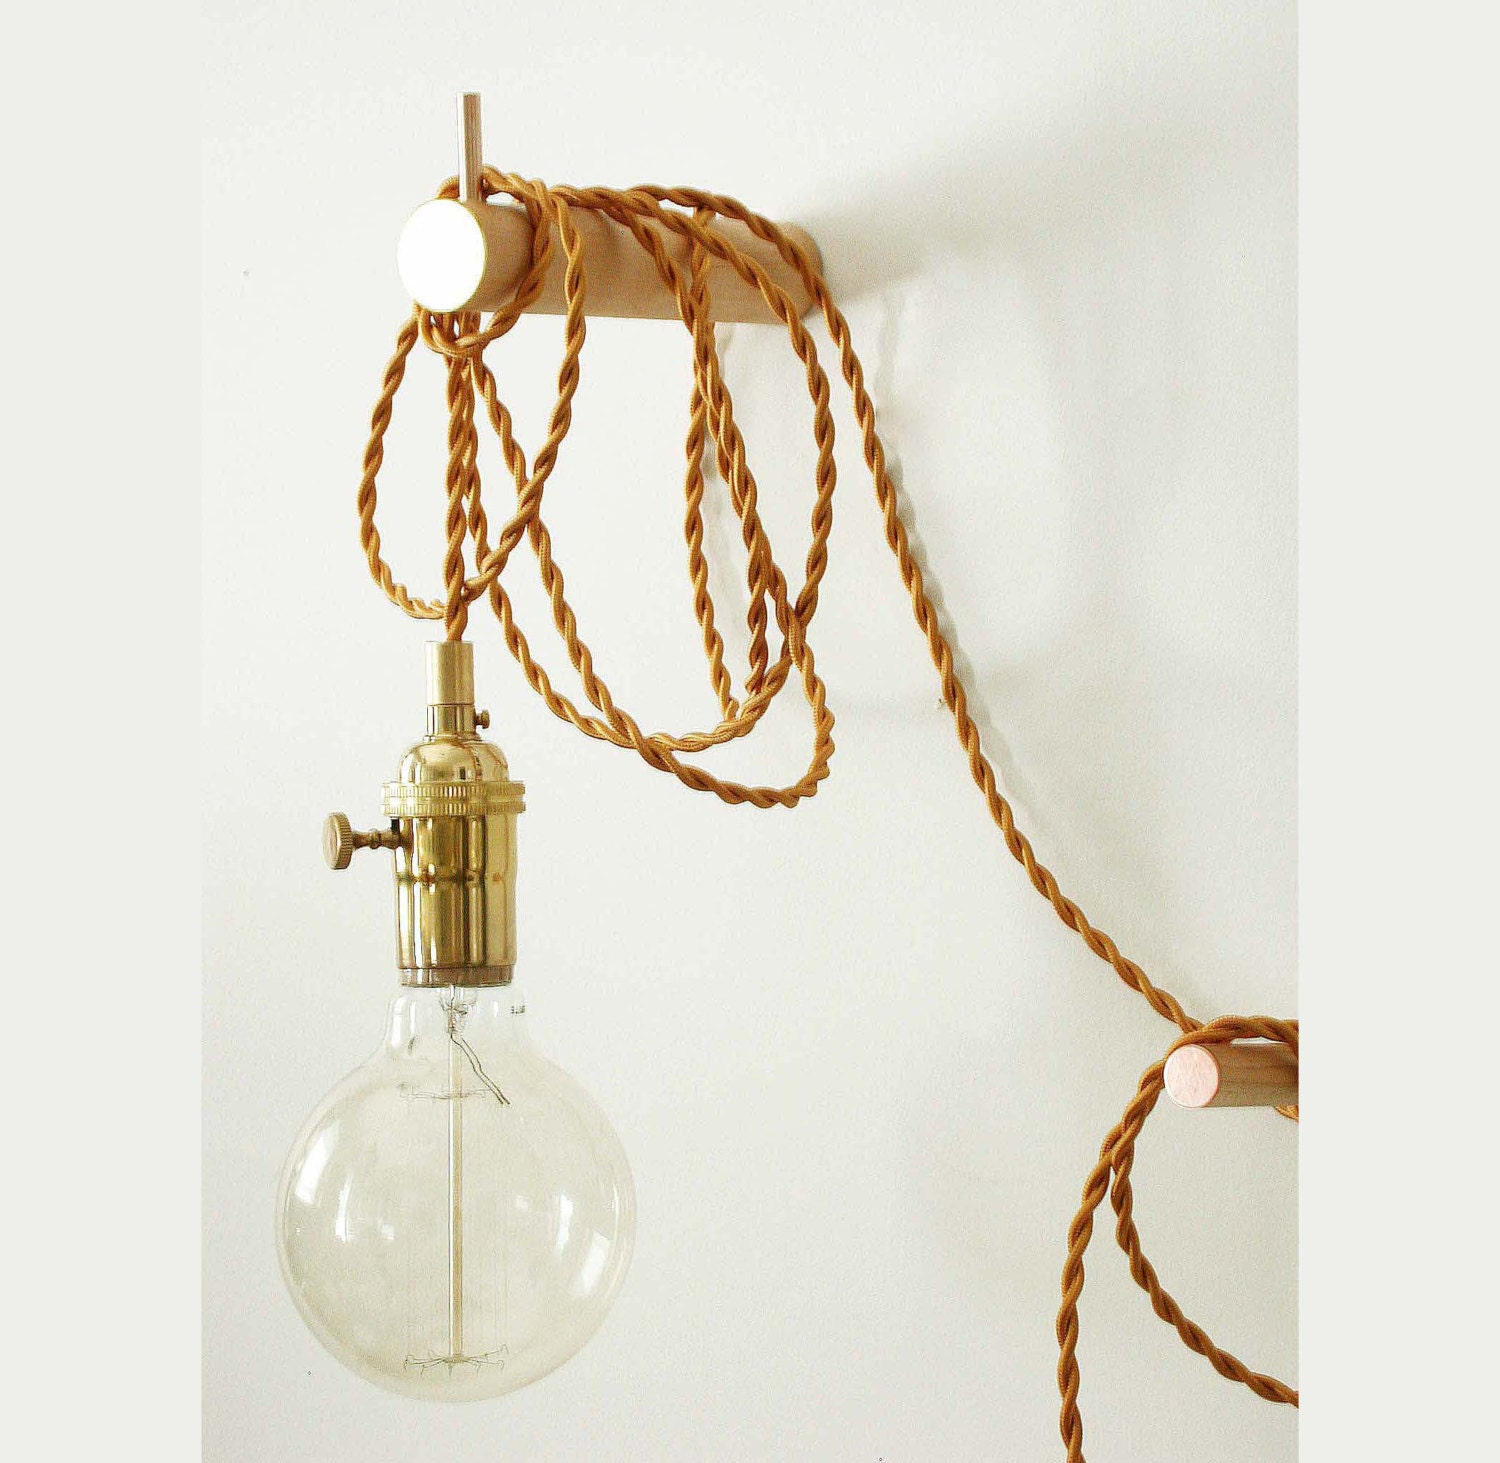 Wall Pendant Light: Pendant Light Brass Wall Lighting Edison Bulb Adjustable